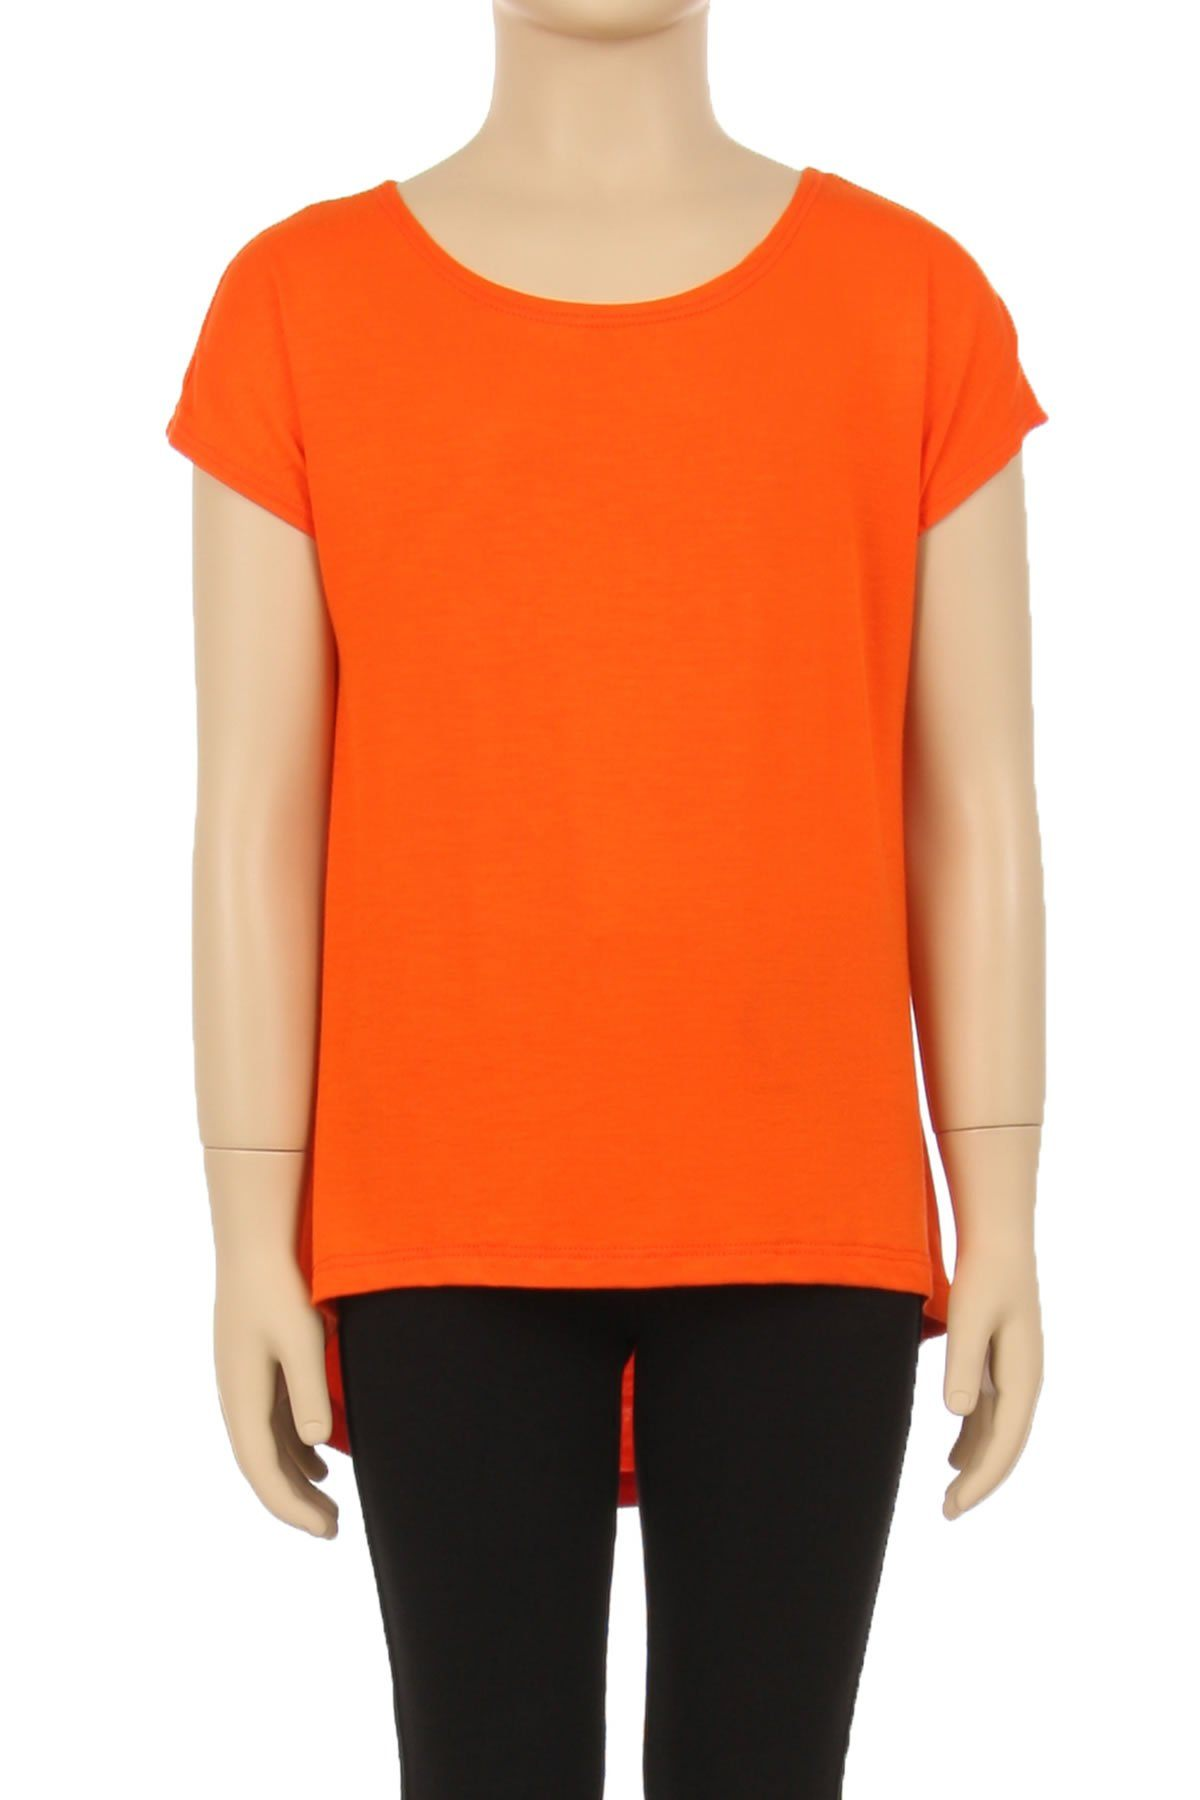 Girl's Orange Tunic Top Short Sleeve Asymmetric: S/M/L/XL - MomMe and More